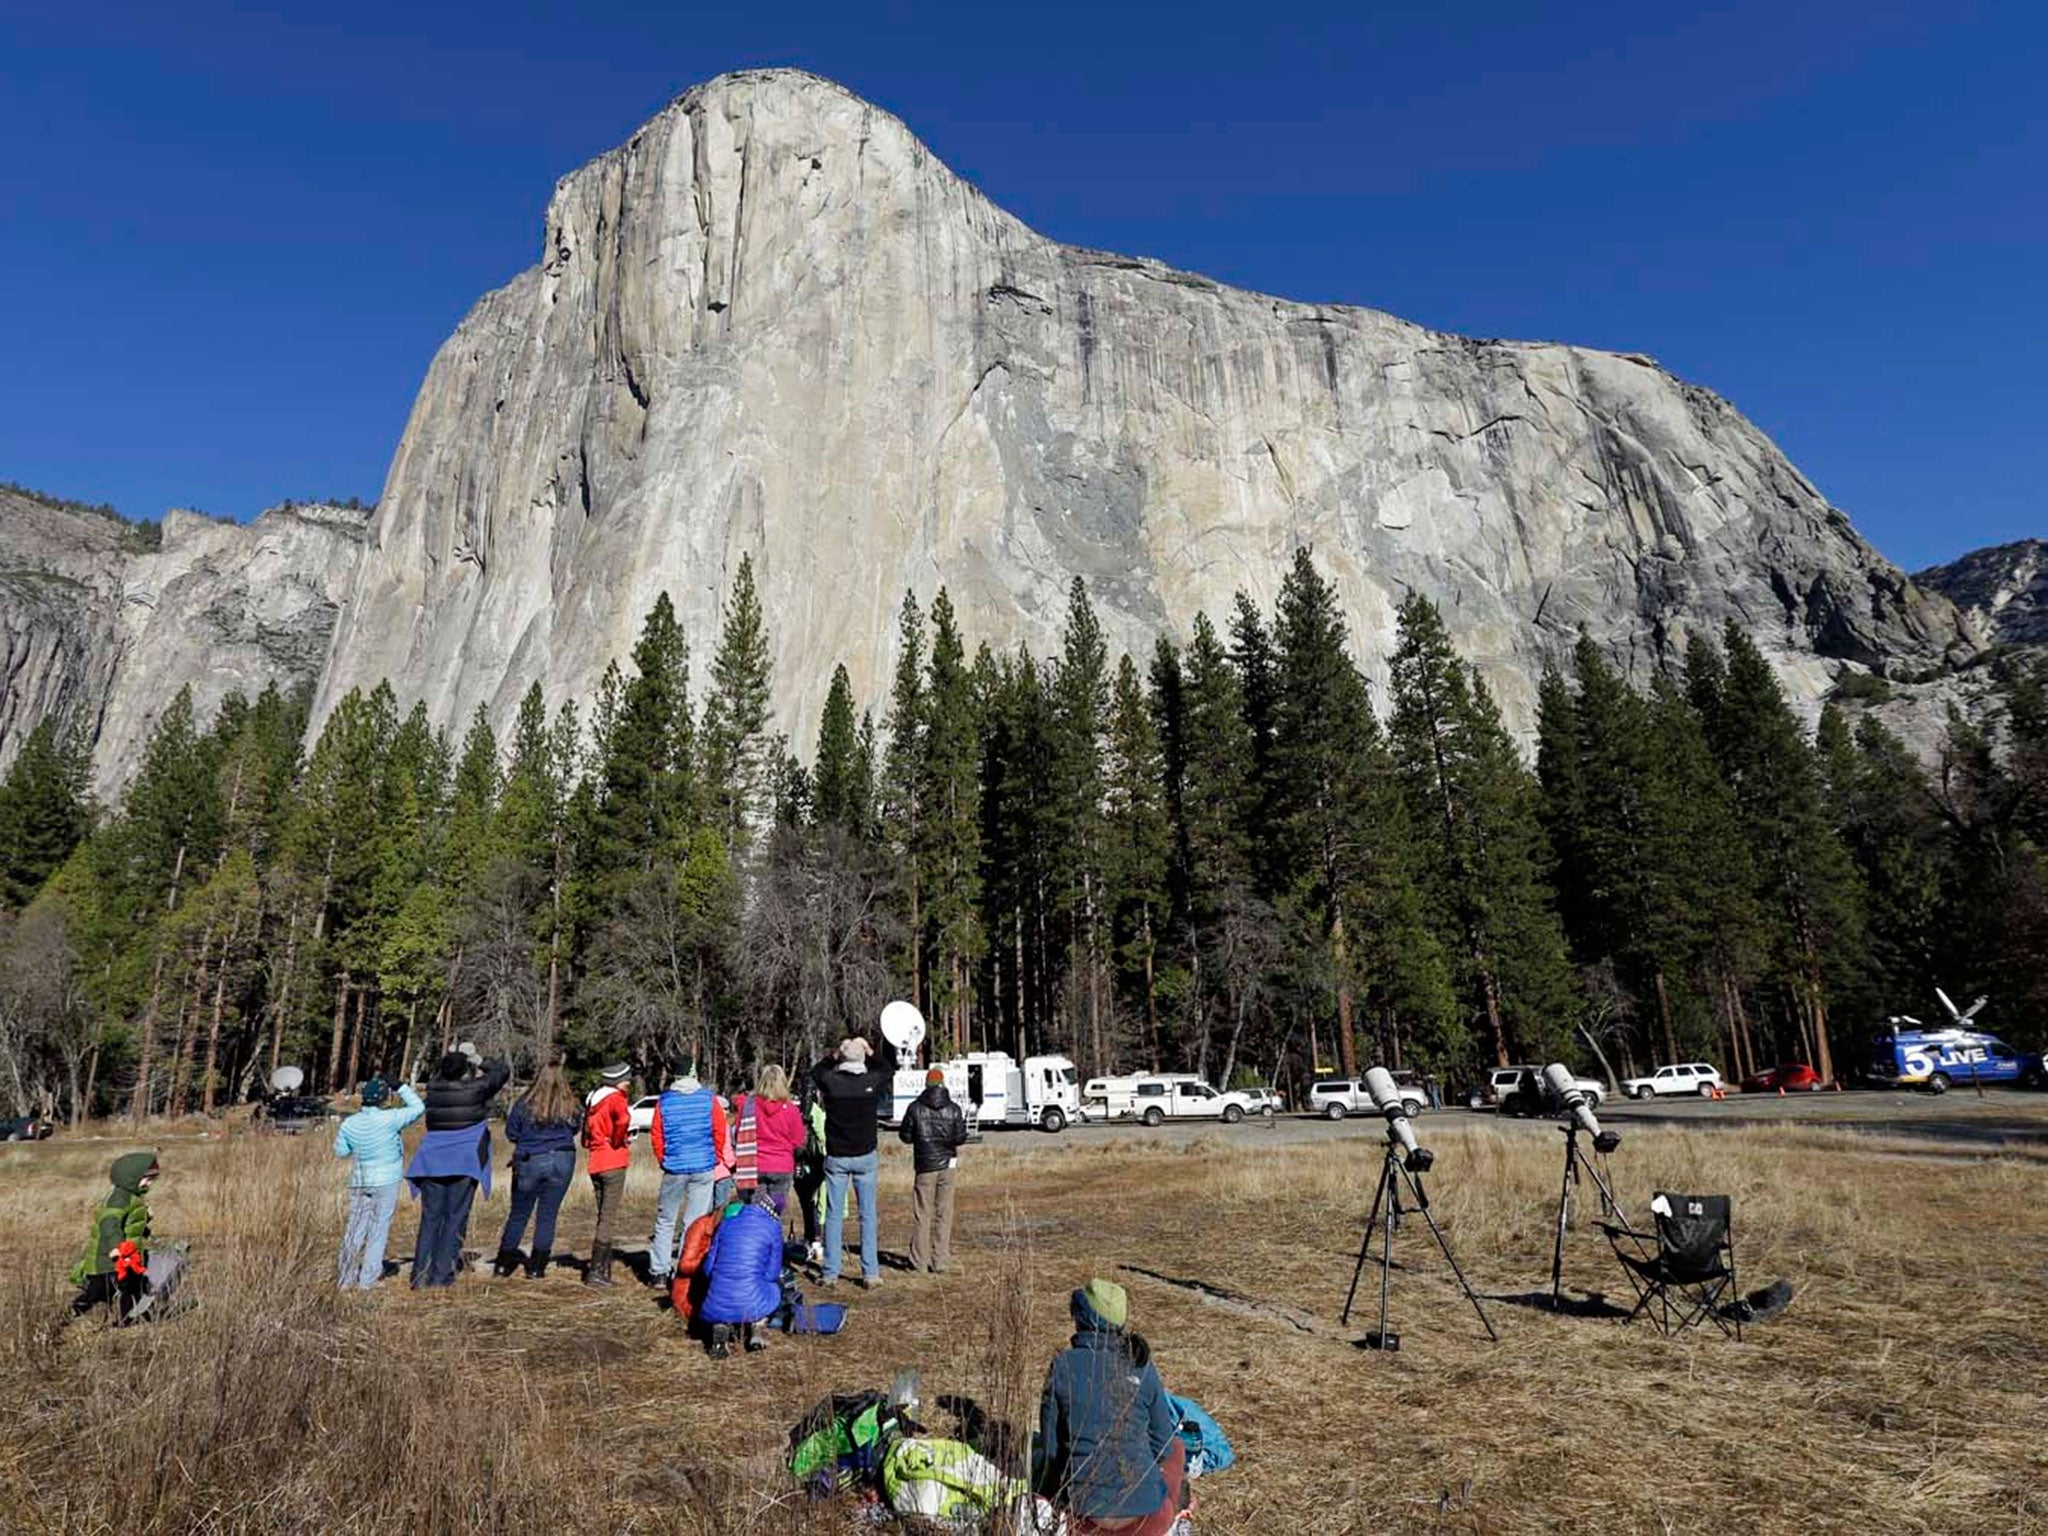 Yosemite deaths: Couple fall from iconic photo spot Taft